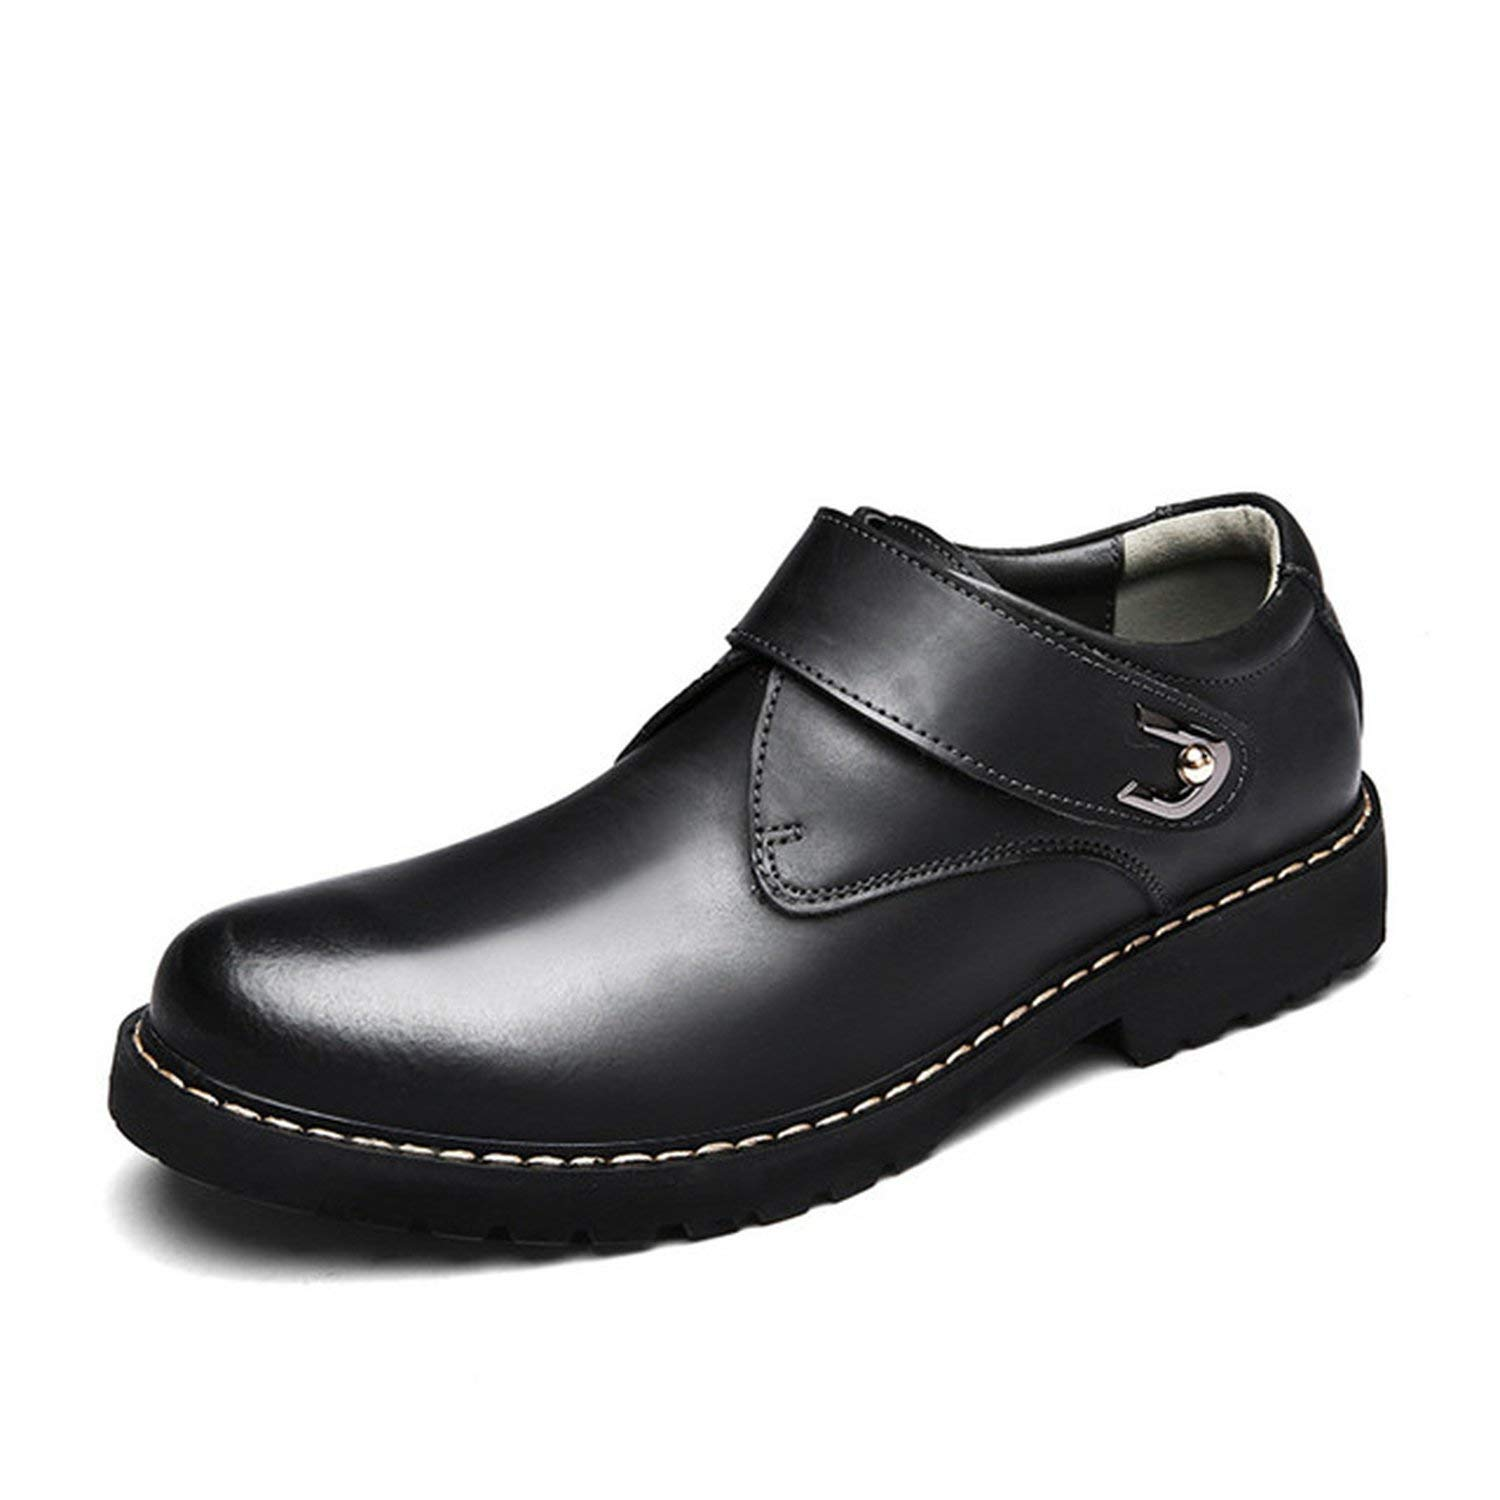 Black Loafers ALWAYS ME Men Genuine Leather shoes Business Wedding Brogue shoes Lace Up Soft Male Footwear